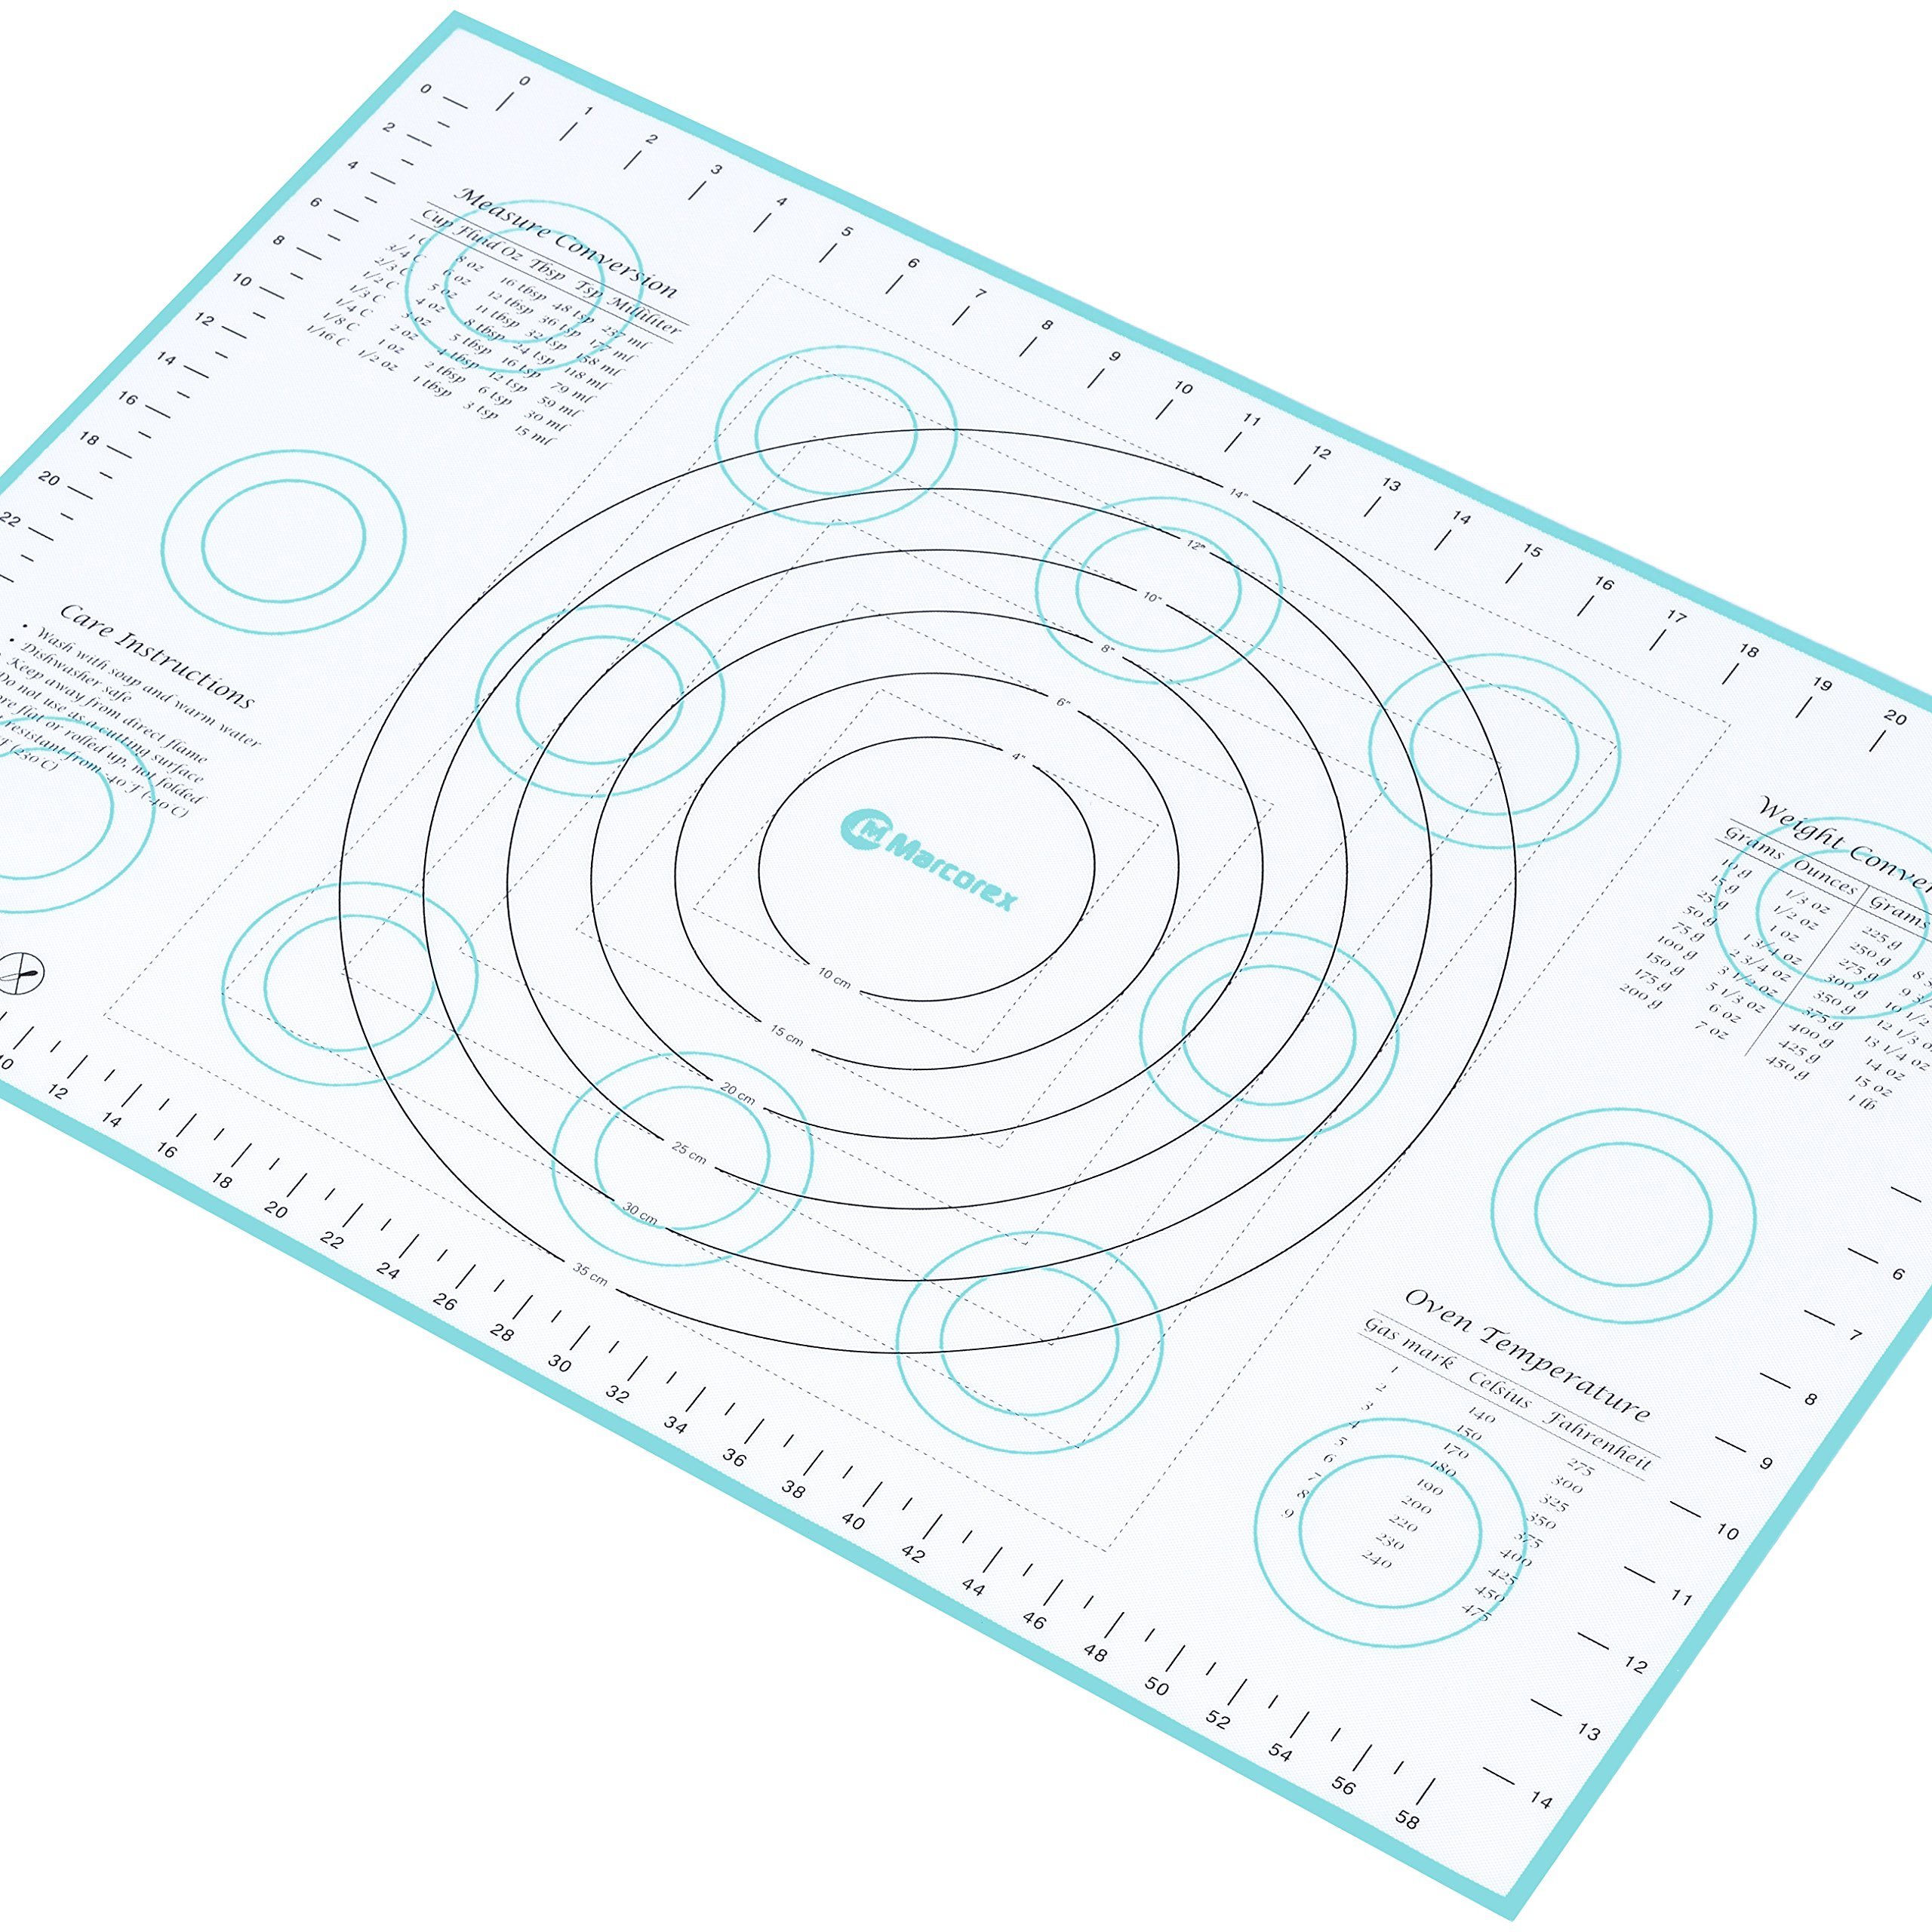 Marcorex Extra-Large Silicone Pastry Mat with Measurements and Conversion Charts, Non-Stick Non-Slip, Fondant Mat, Cookie Rolling Dough Mat (X-Large (26'' x 17''), Blue)